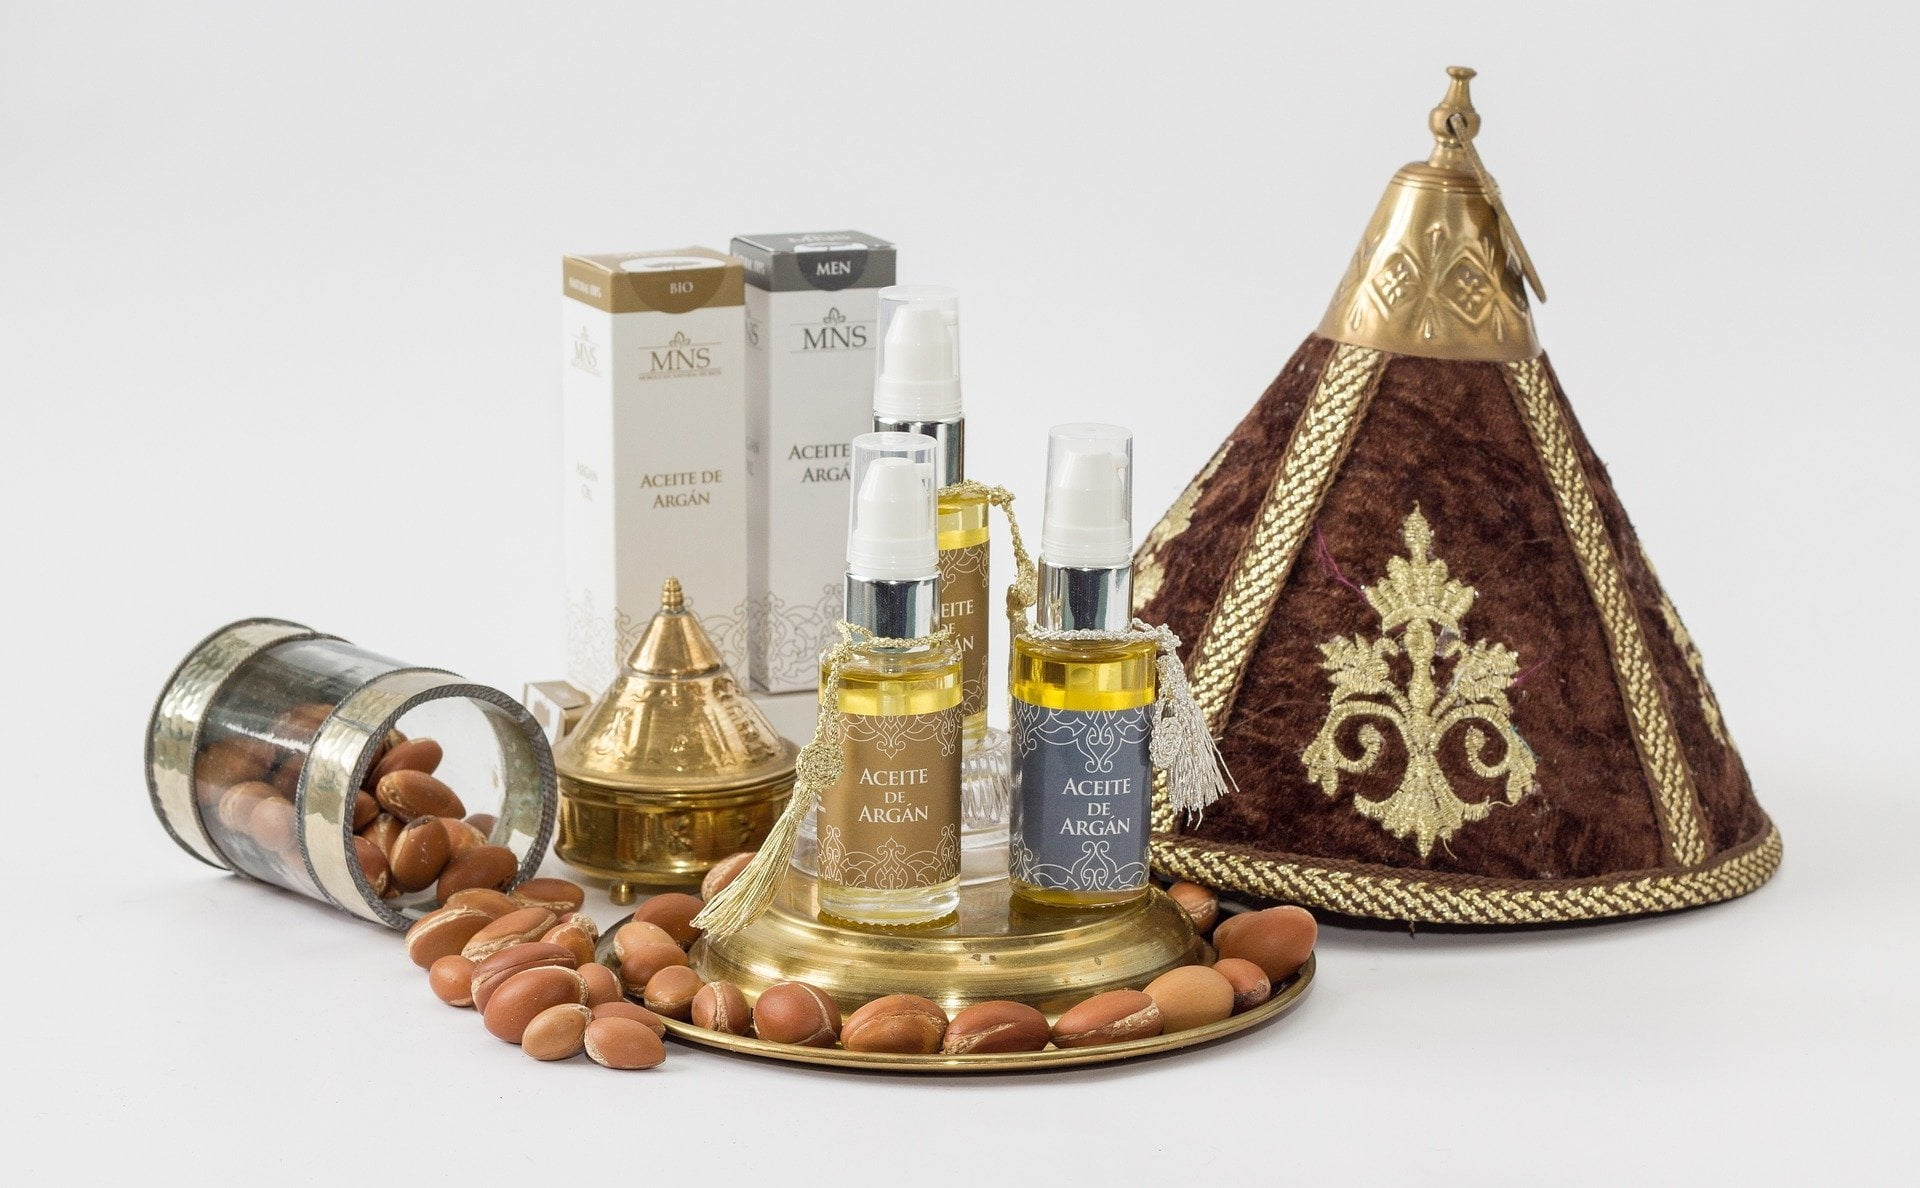 Magical Argan Oil for Beautiful Hair and Skin